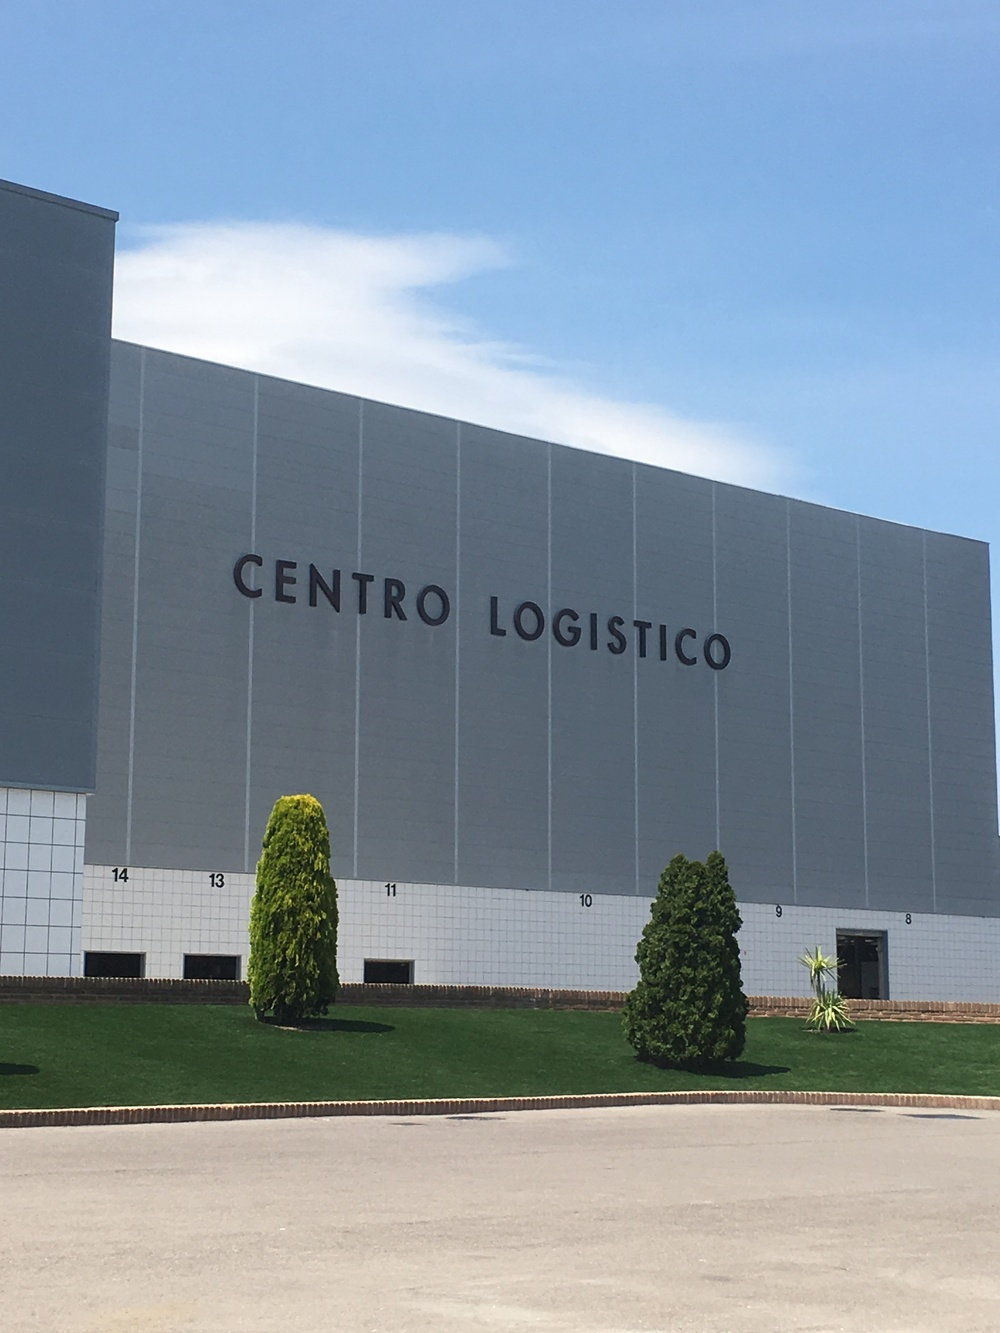 The logistical centre/warehouse- those tiny portholes you see are lorry ports